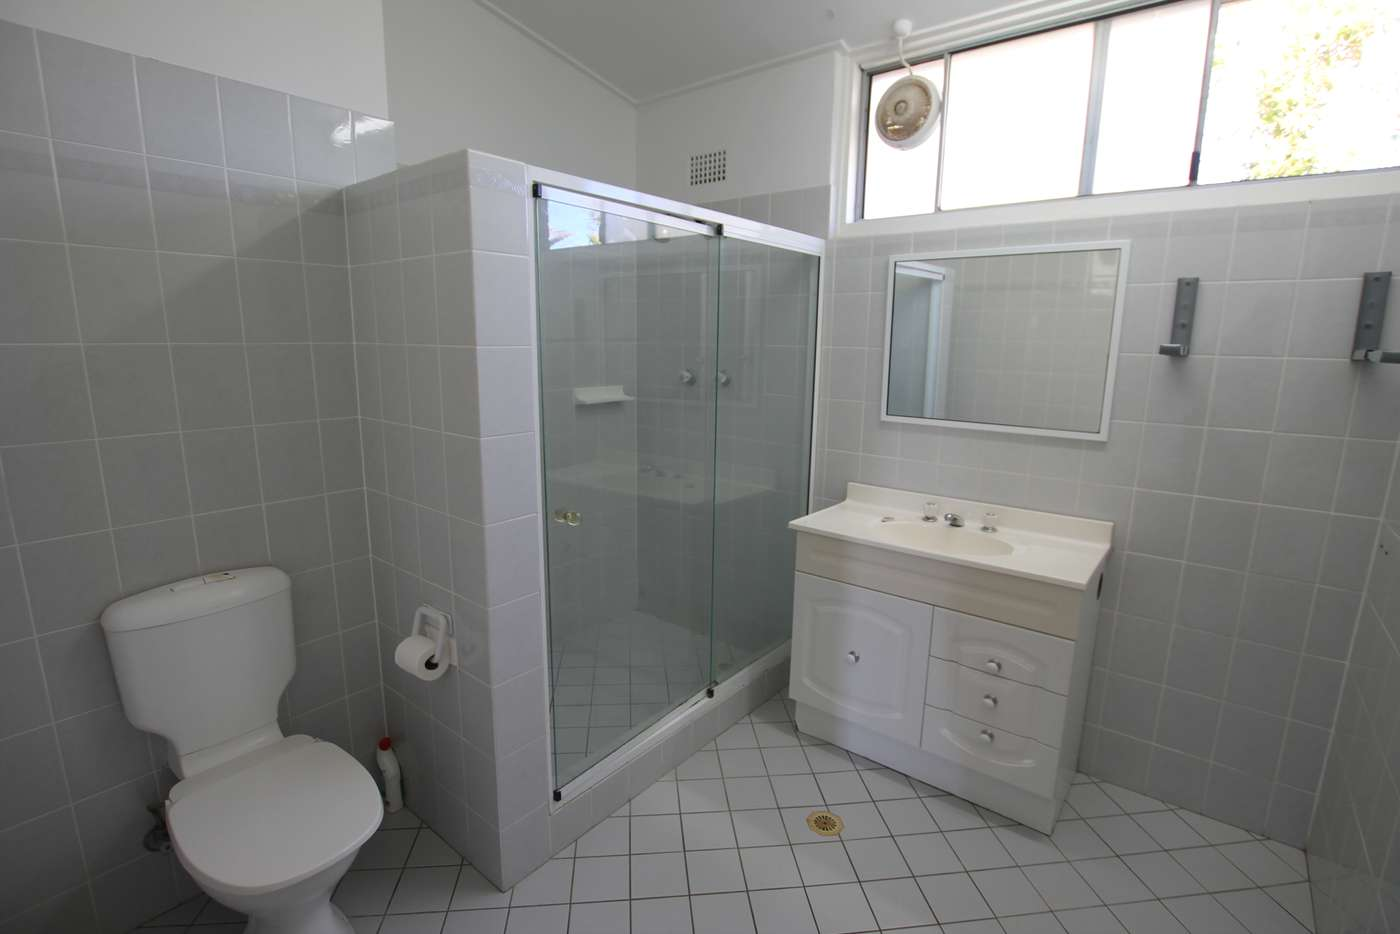 Sixth view of Homely unit listing, 3/26 Nesca Parade, Cooks Hill NSW 2300